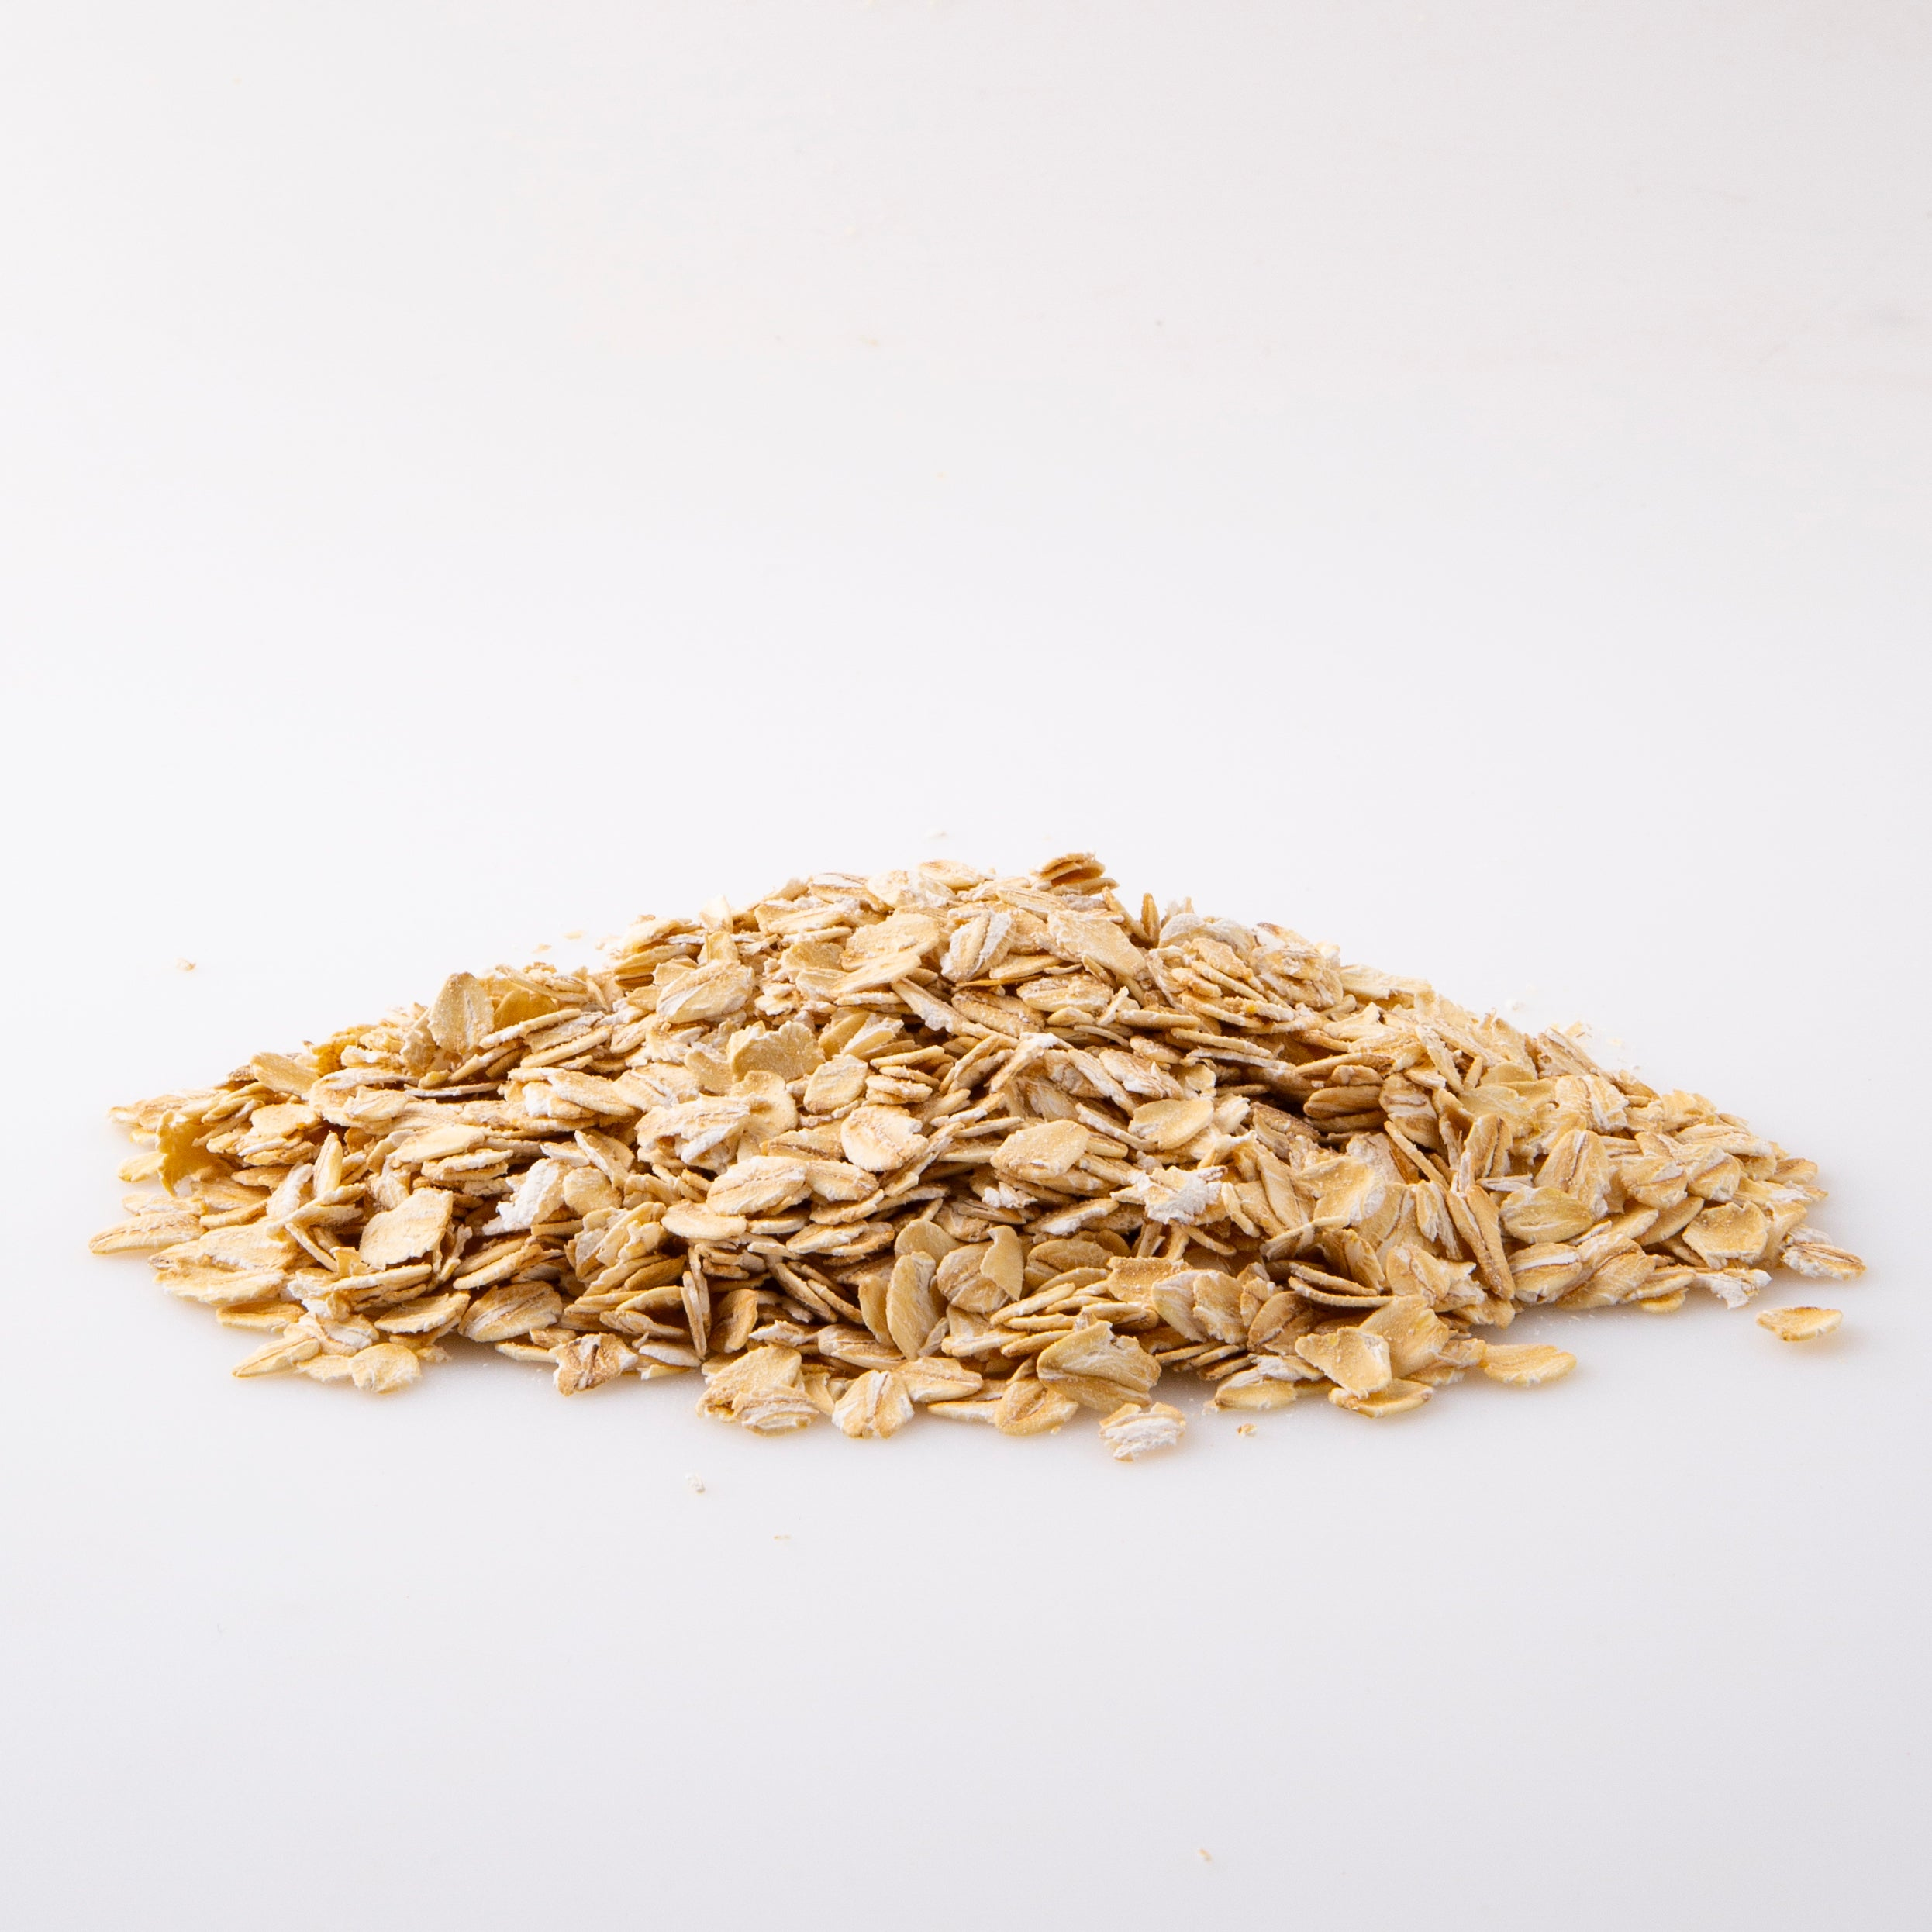 Organic Oats - Uncontaminated